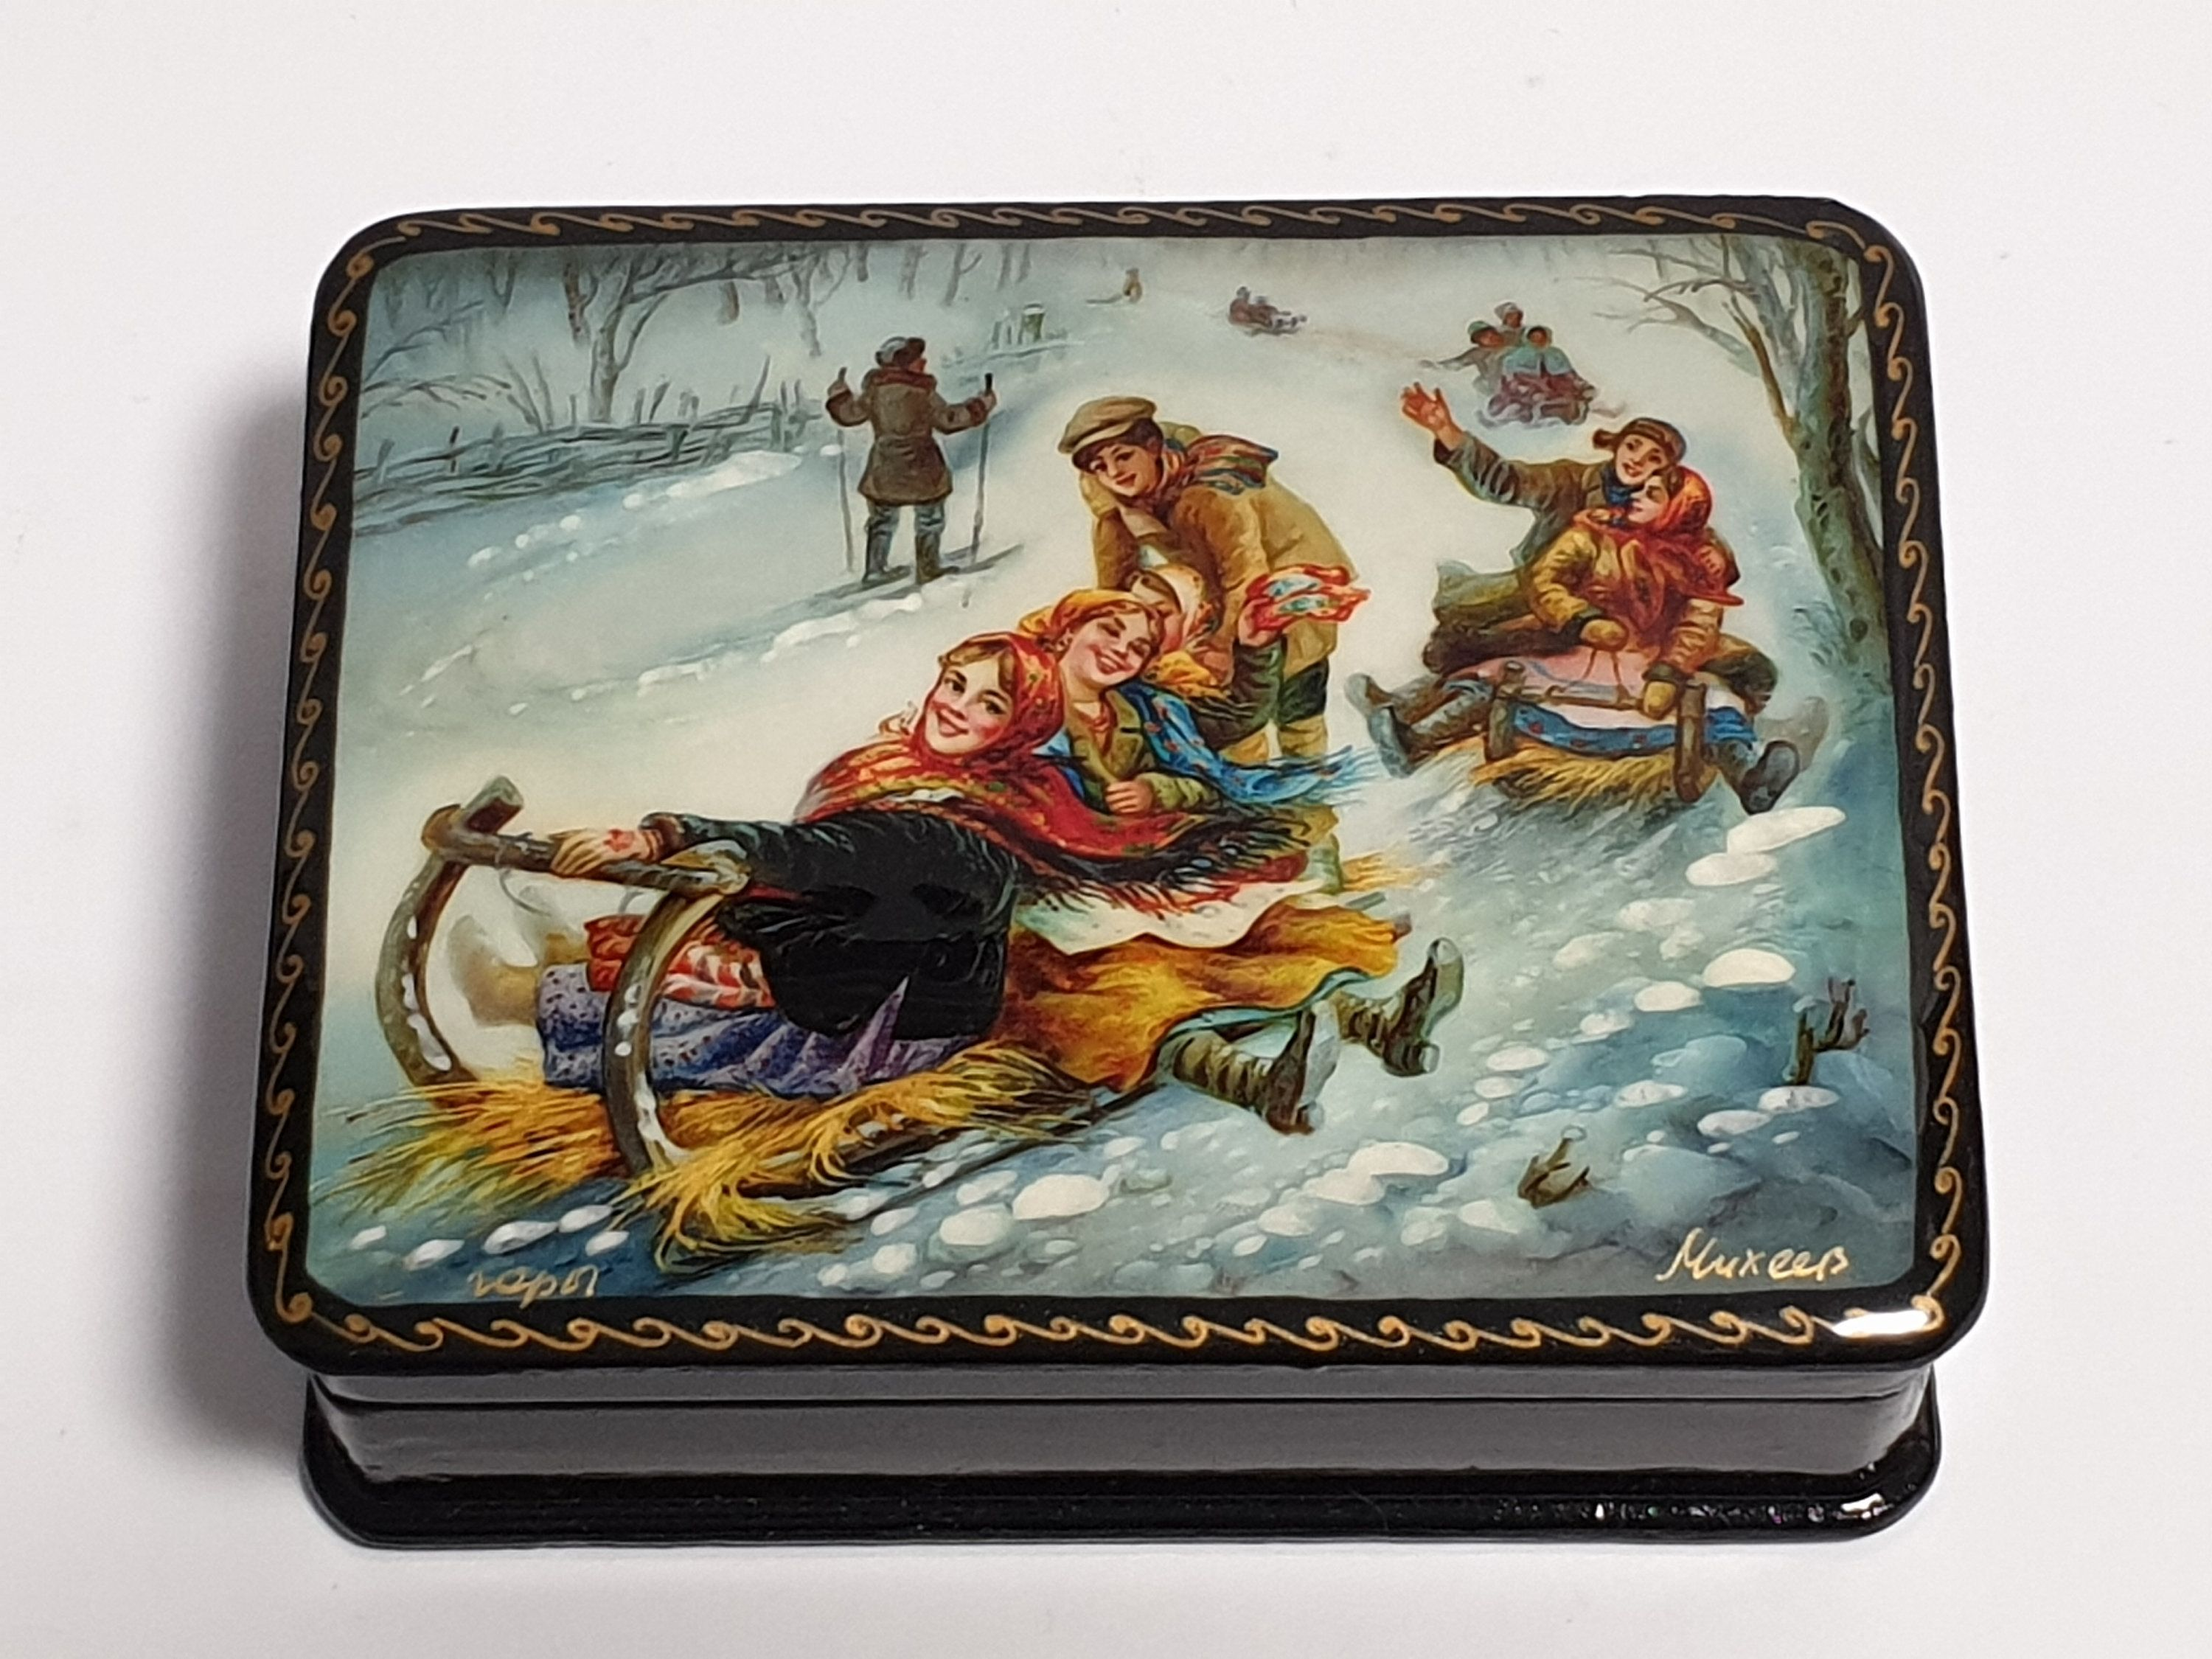 Russian Lacquer Box Fedoskino Unique Trinket Box Painted Wooden Jewlery Box Gift for Her